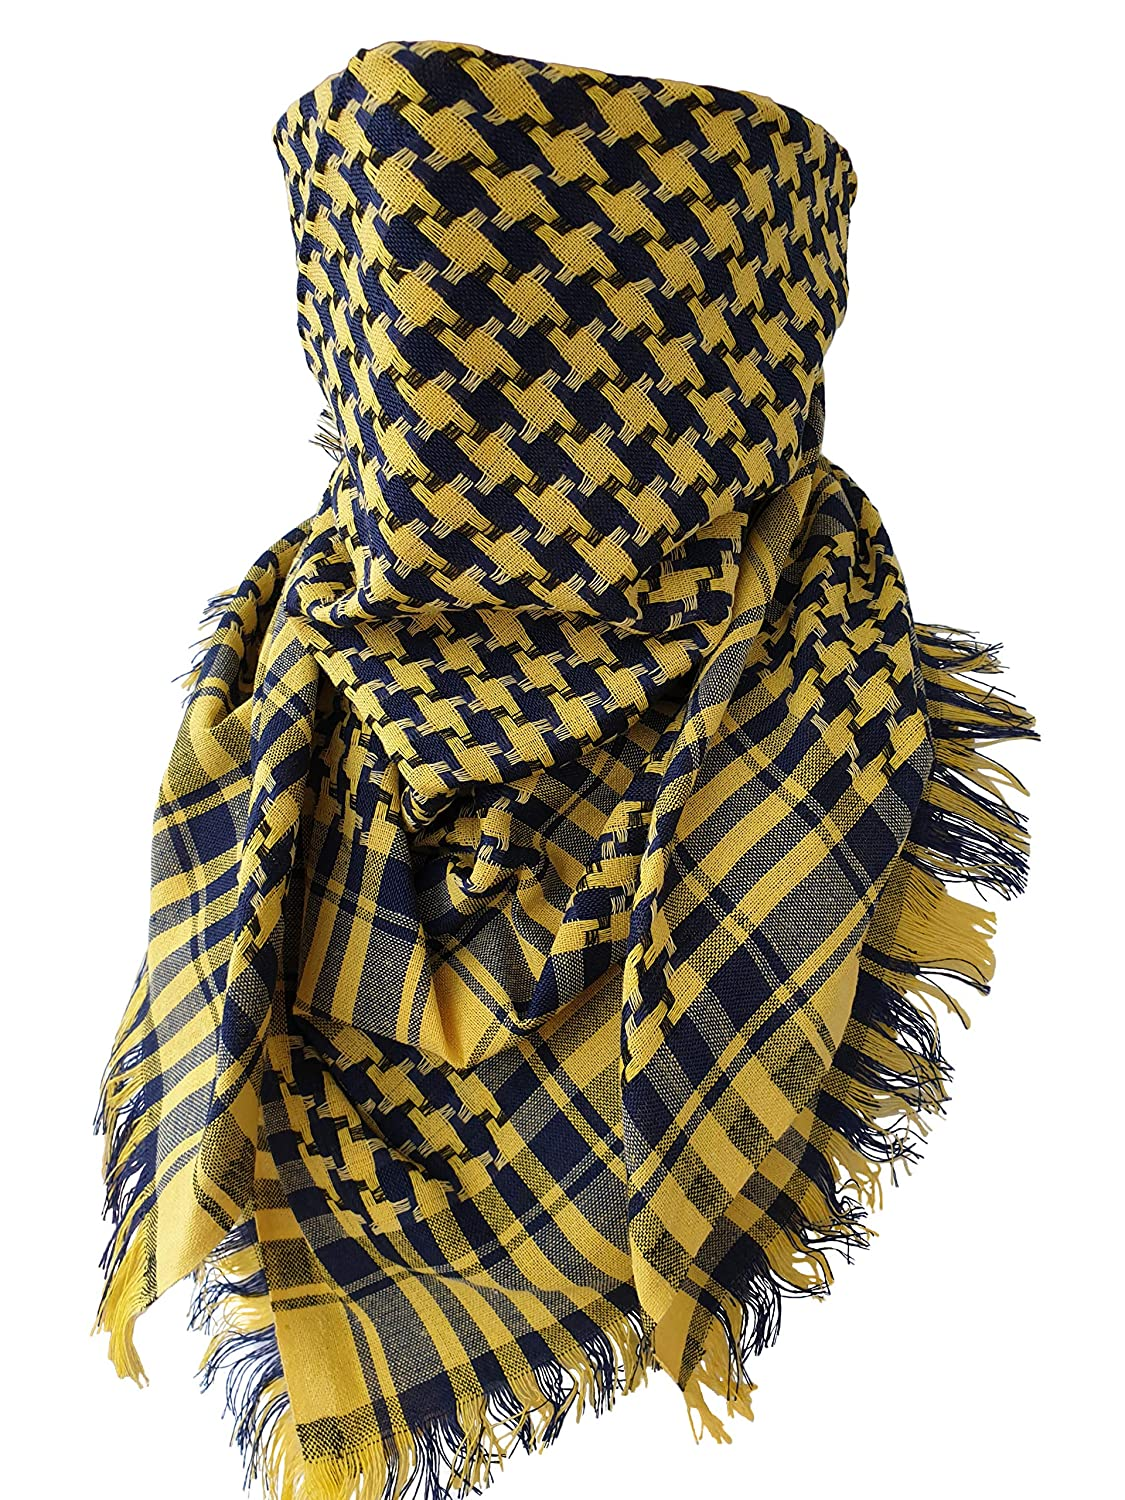 Military Scarf Shemagh Keffiyeh Cotton All items in Superior the store Head Tactica Bandana Wrap